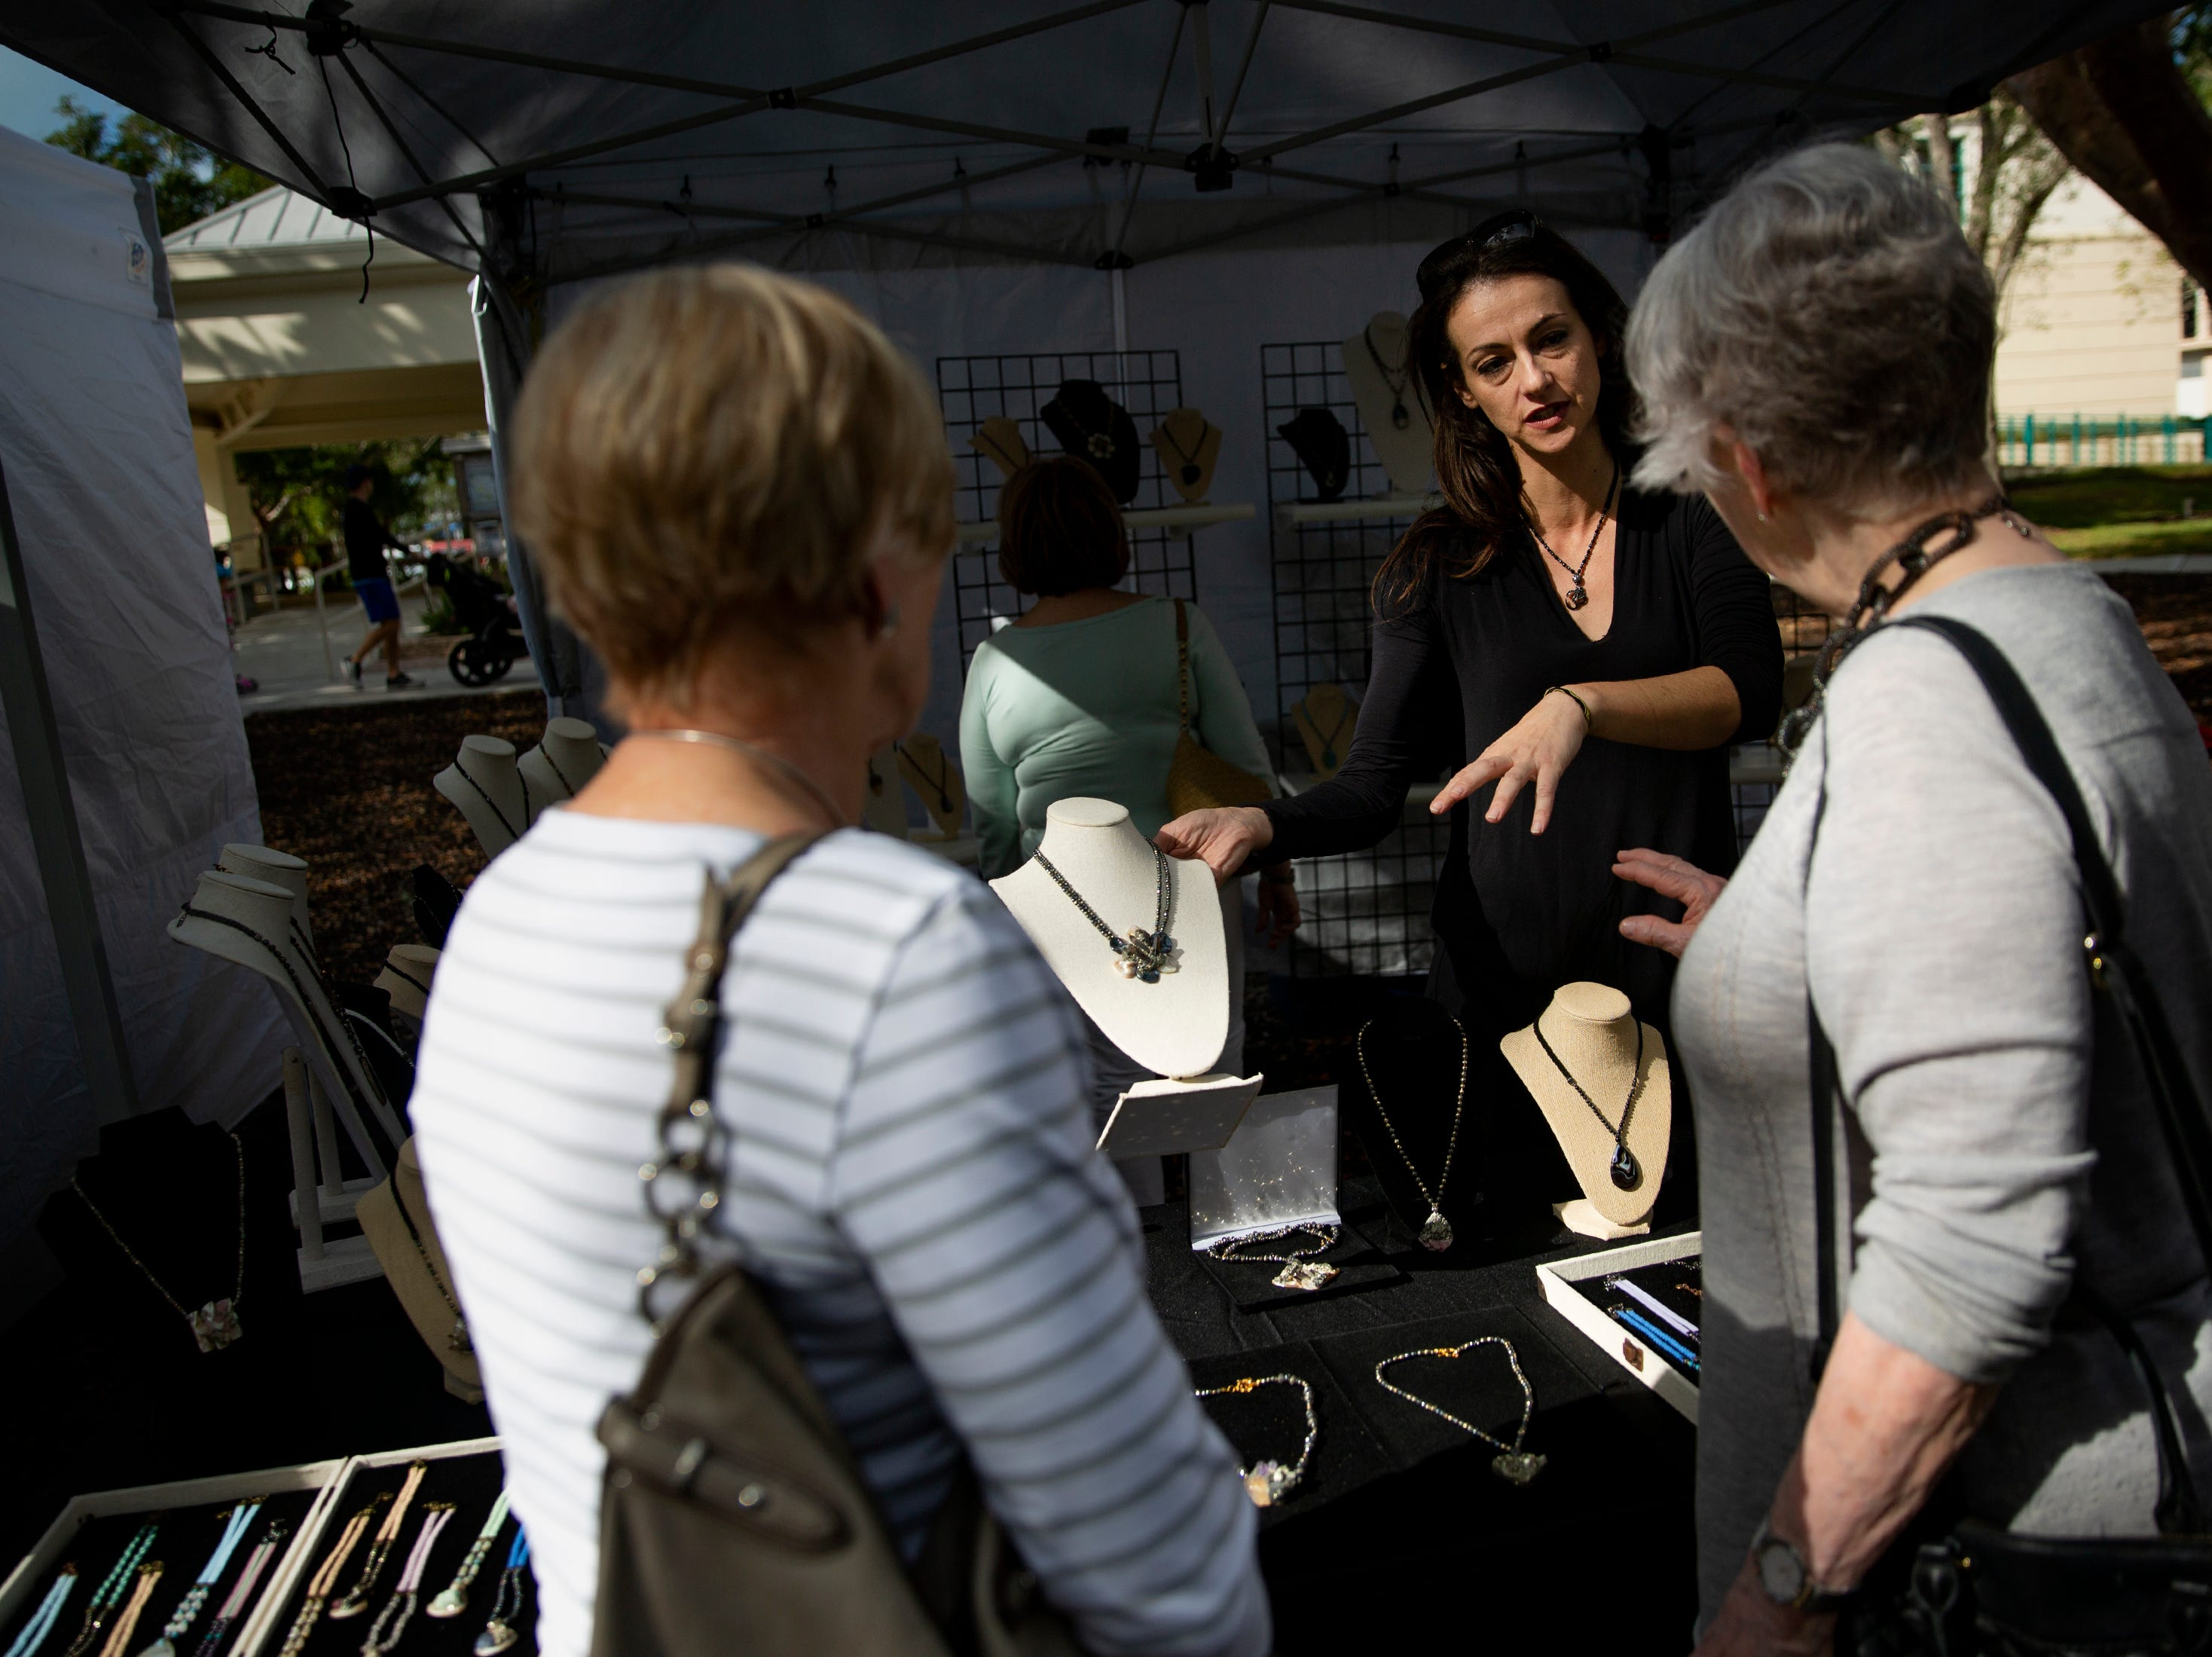 Jewelry designer Gordana Jordanoska, owner of Zagat Jewelry, talks about her work to visitors at the Naples Artcrafters' monthly art show, Saturday, Jan. 12, 2019, in Cambier Park in Naples.